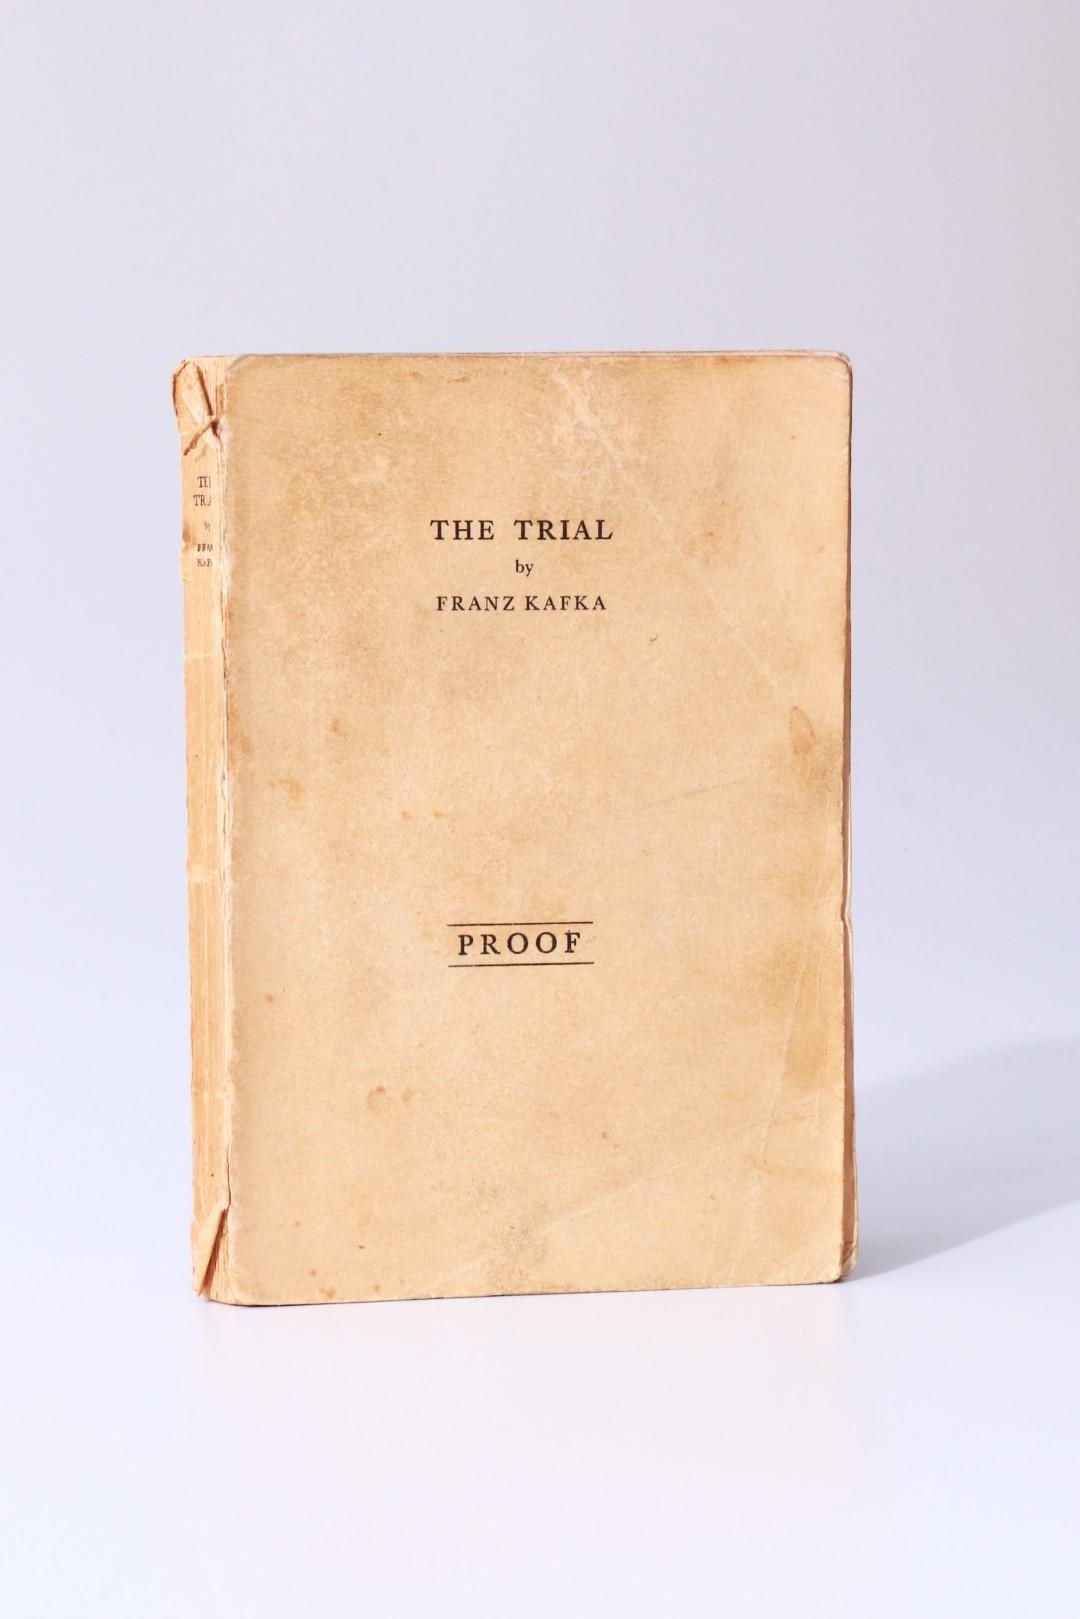 Franz Kafka - The Trial - Gollancz, 1937, Proof.